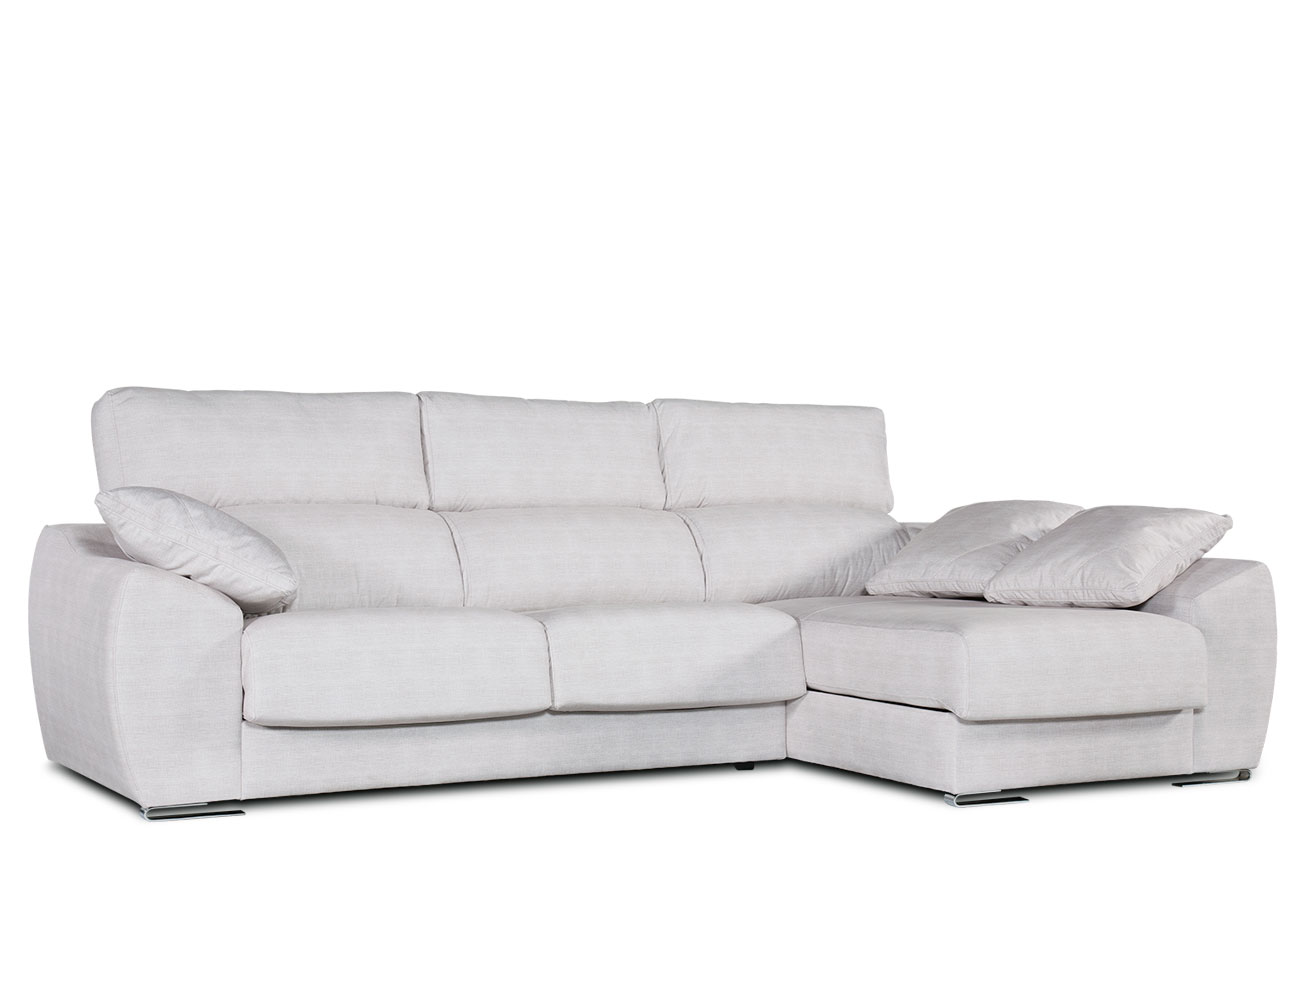 Sofa chaiselongue moderno blanco 1